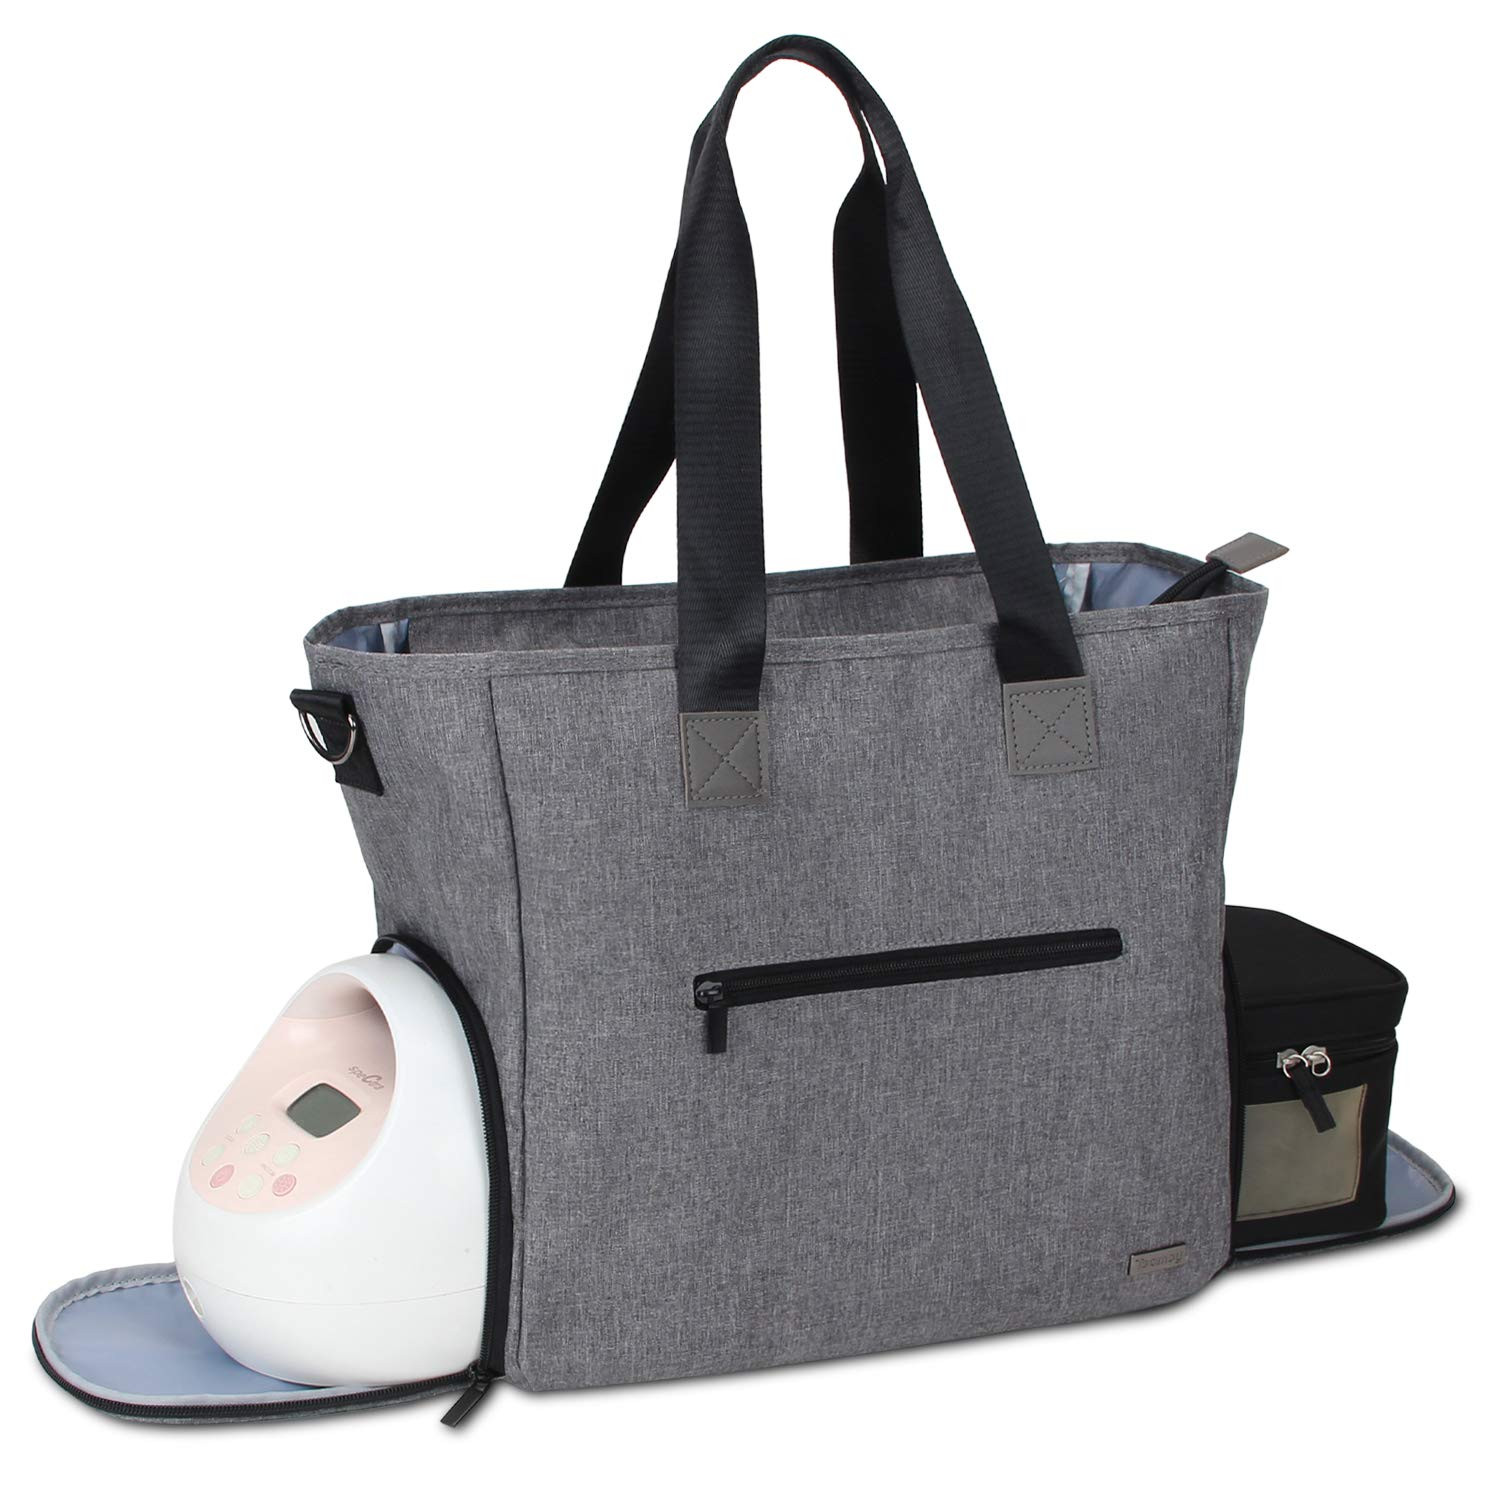 Teamoy Breast Pump Bag, Pumping Bag Tote with Pocket for Breast Pump, Cooler Bag, Laptop(Up to 14'') and More, Perfect for Working Moms, Dark Gray (Bag Only) by Teamoy